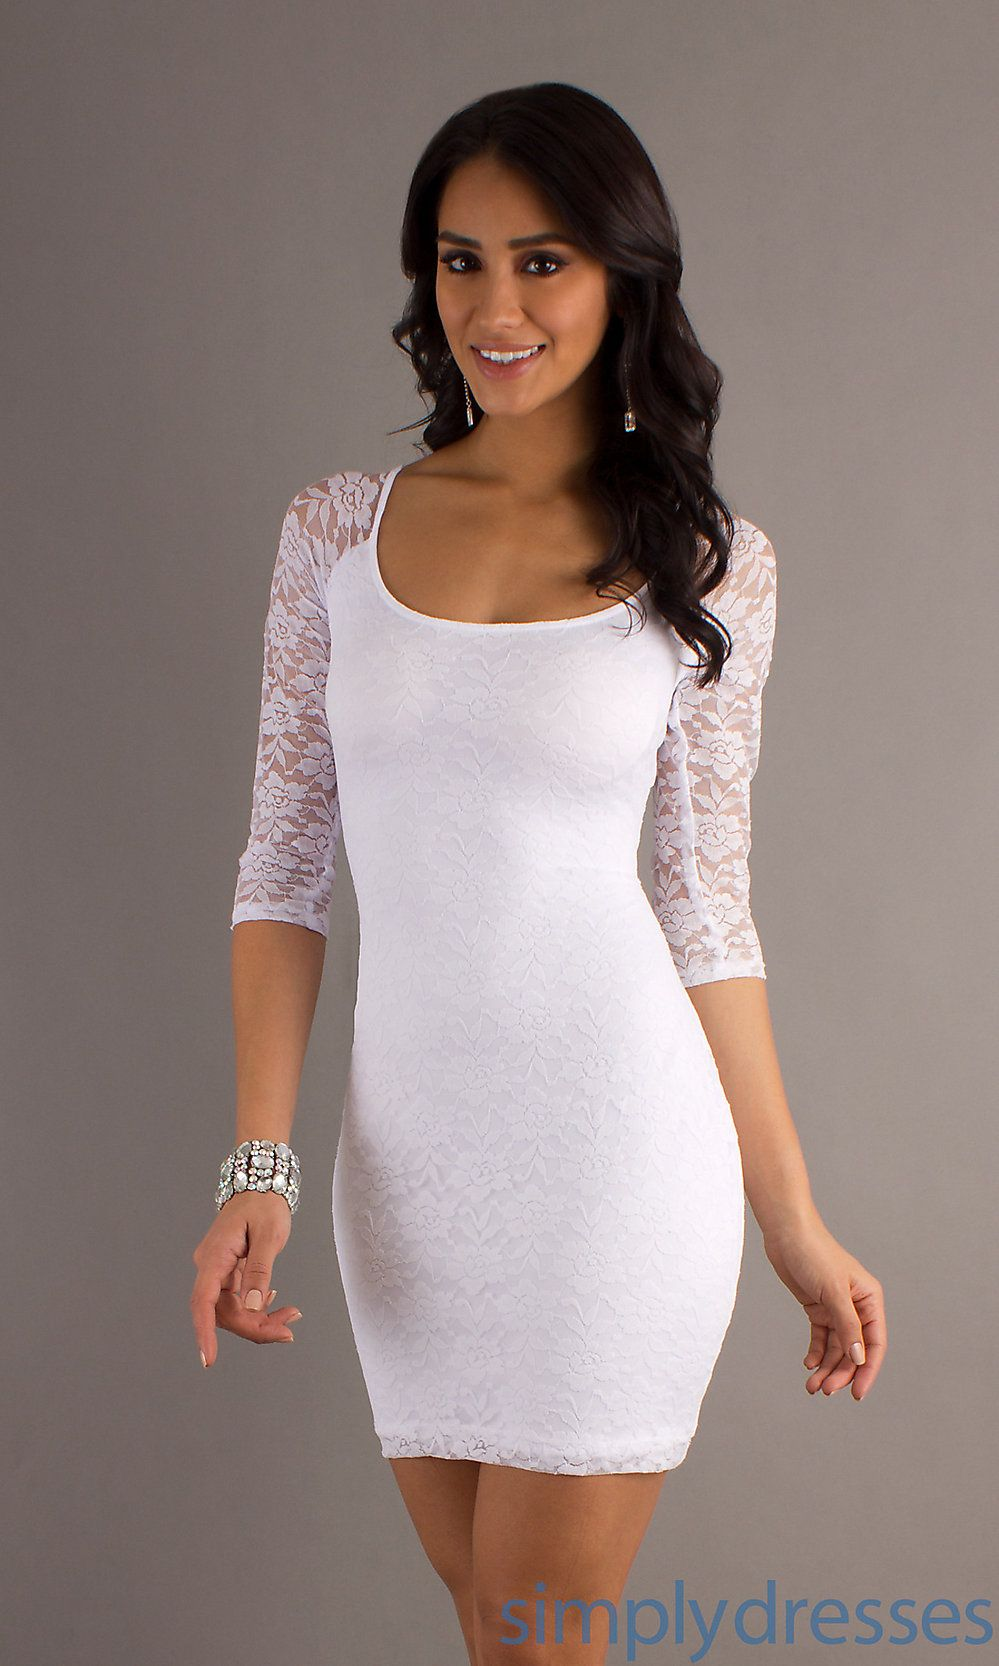 Short White Lace Dress, White Homecoming Dresses - Simply Dresses ...